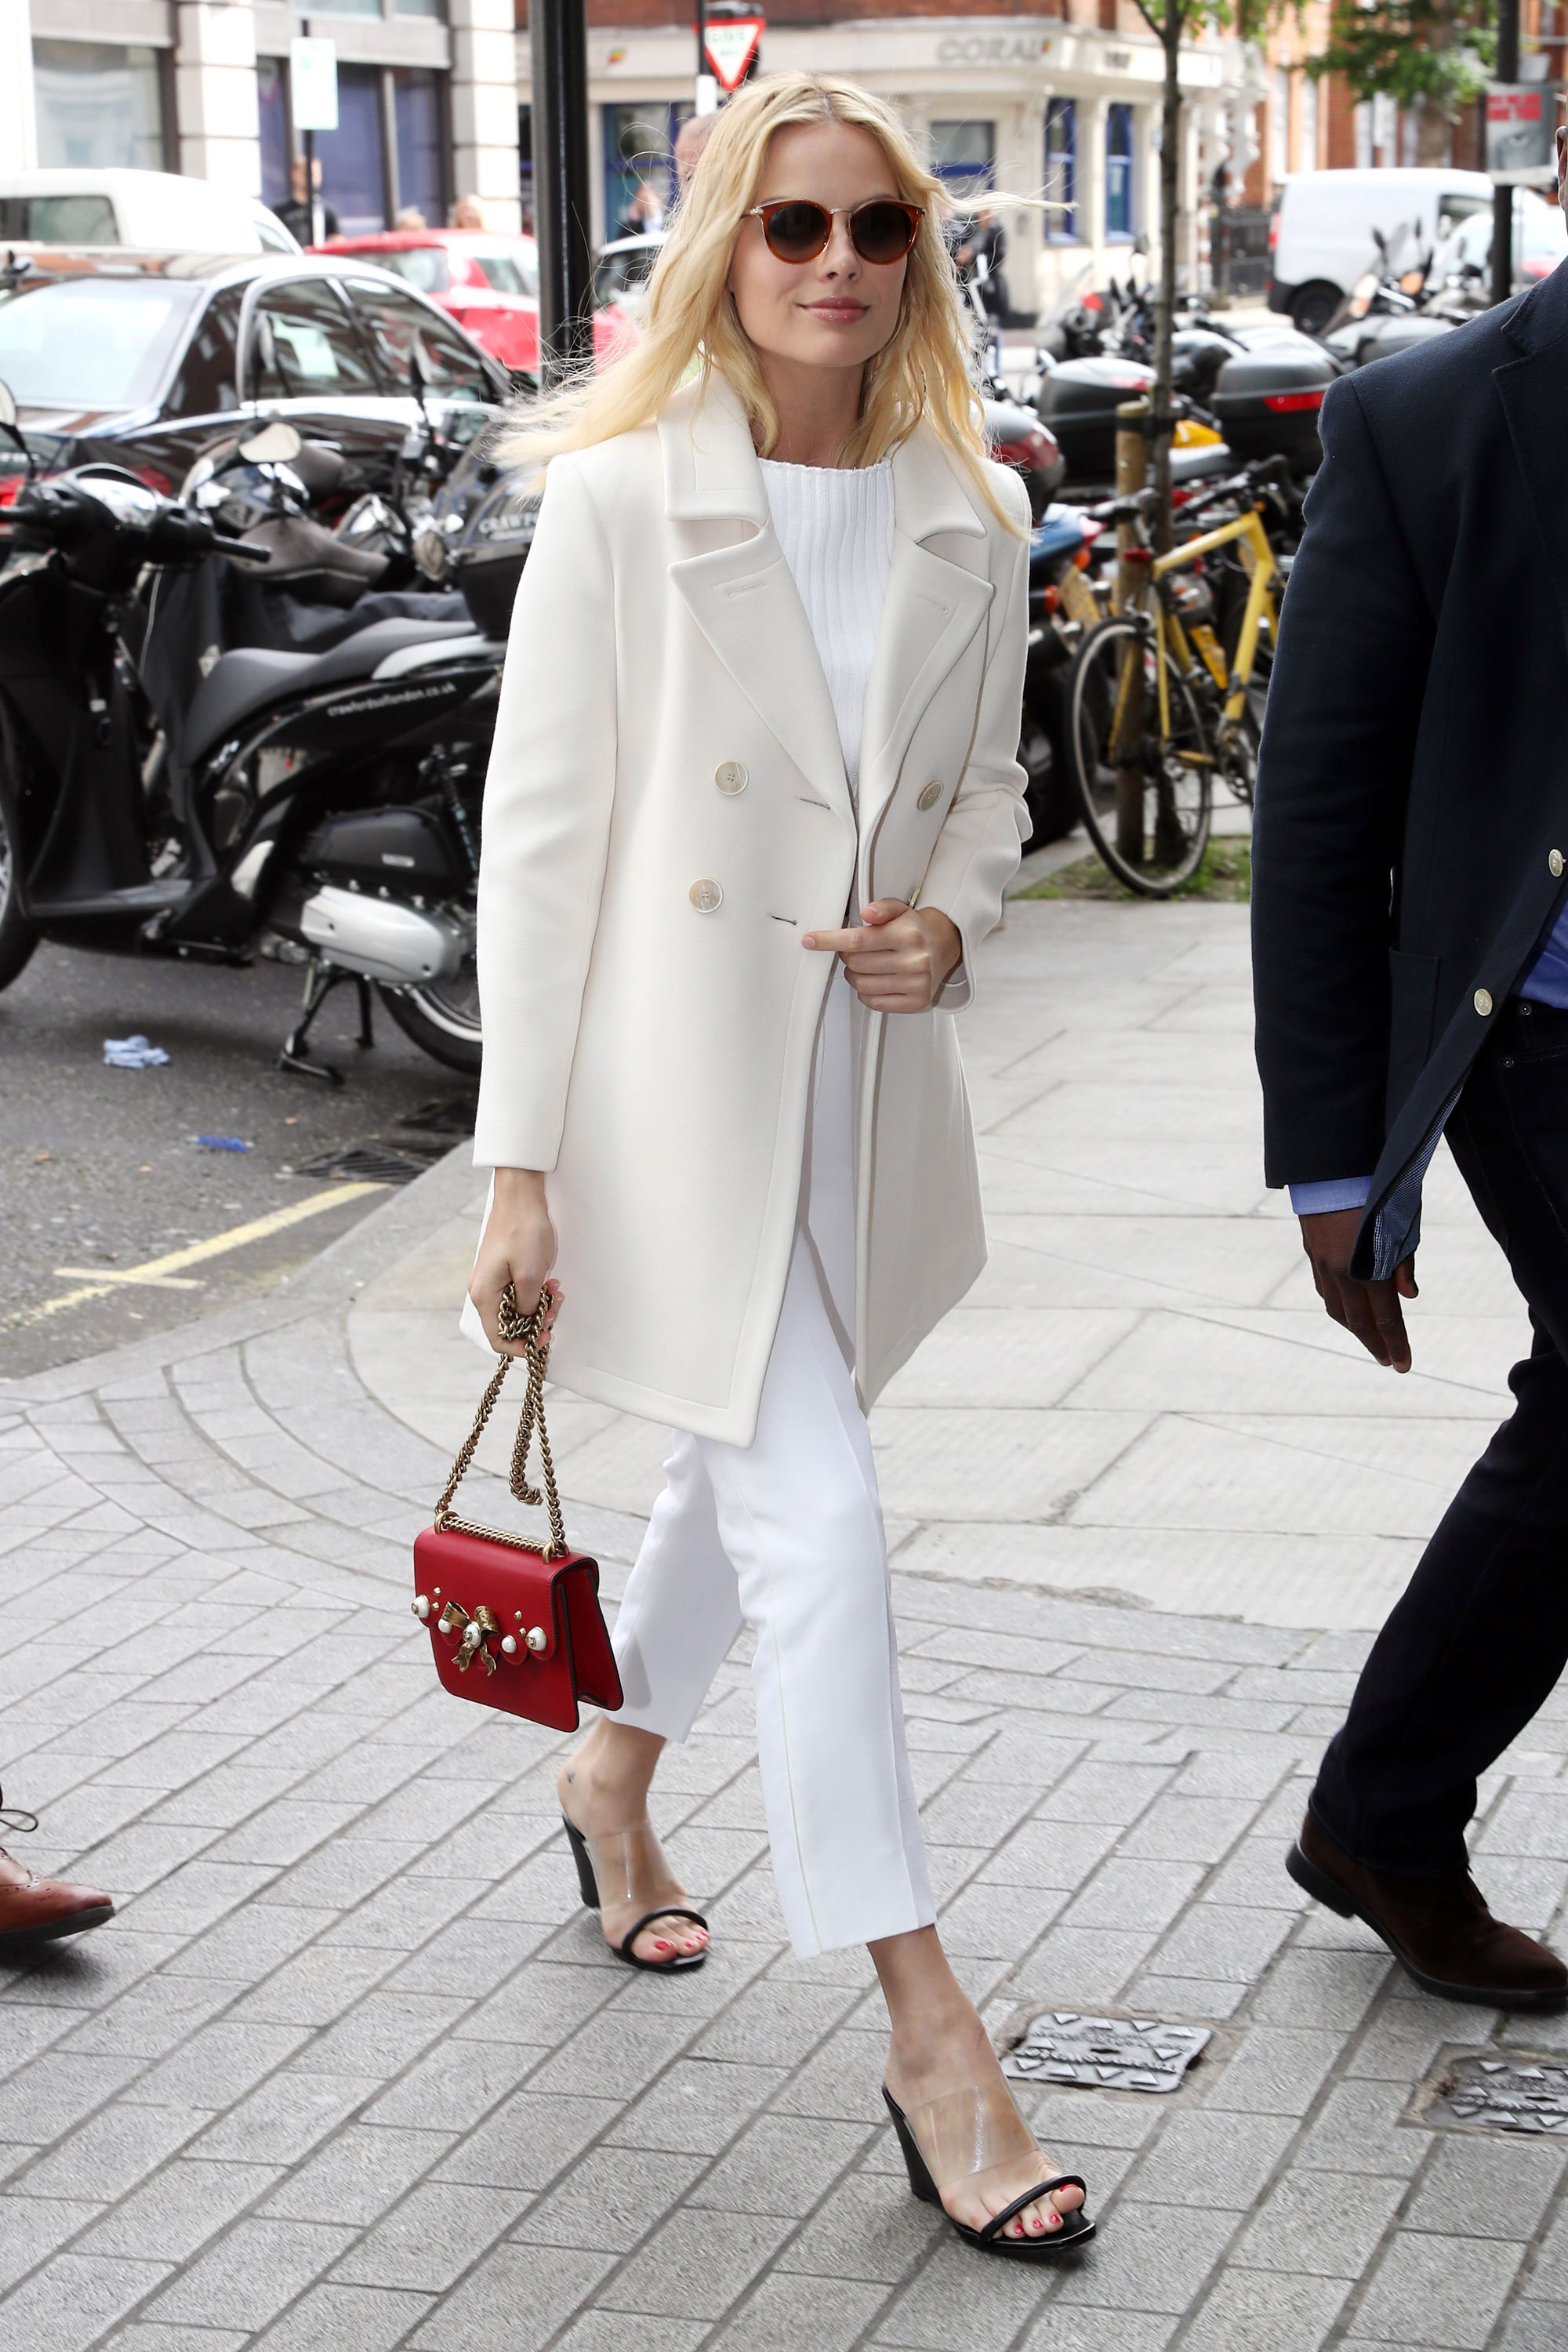 Margot Robbie In The Monochromatic Summer Look For Day Vogue